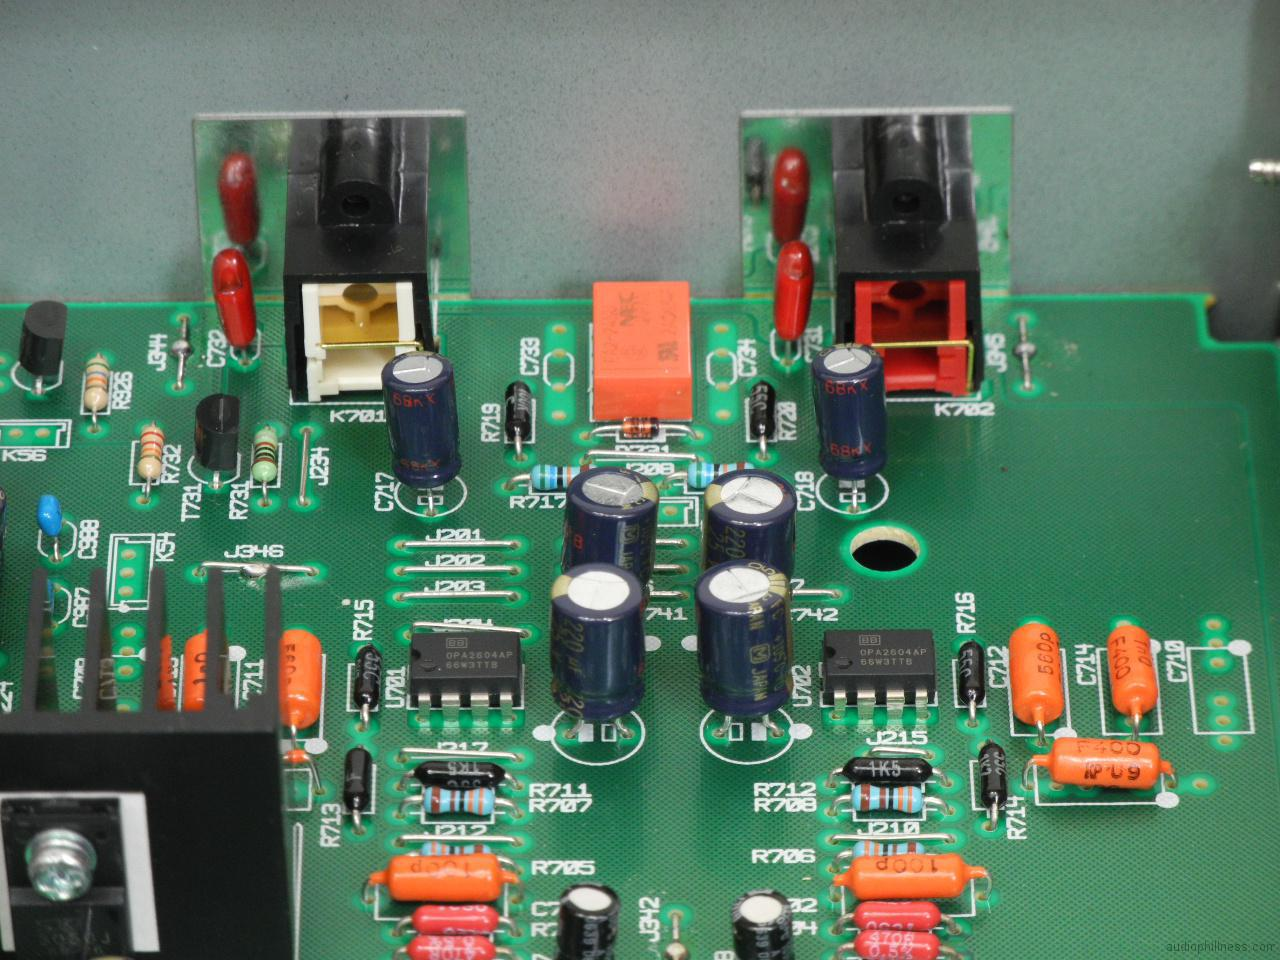 Audio Player Circuit Board Pcbcircuit Boardfactory Wholesale Price